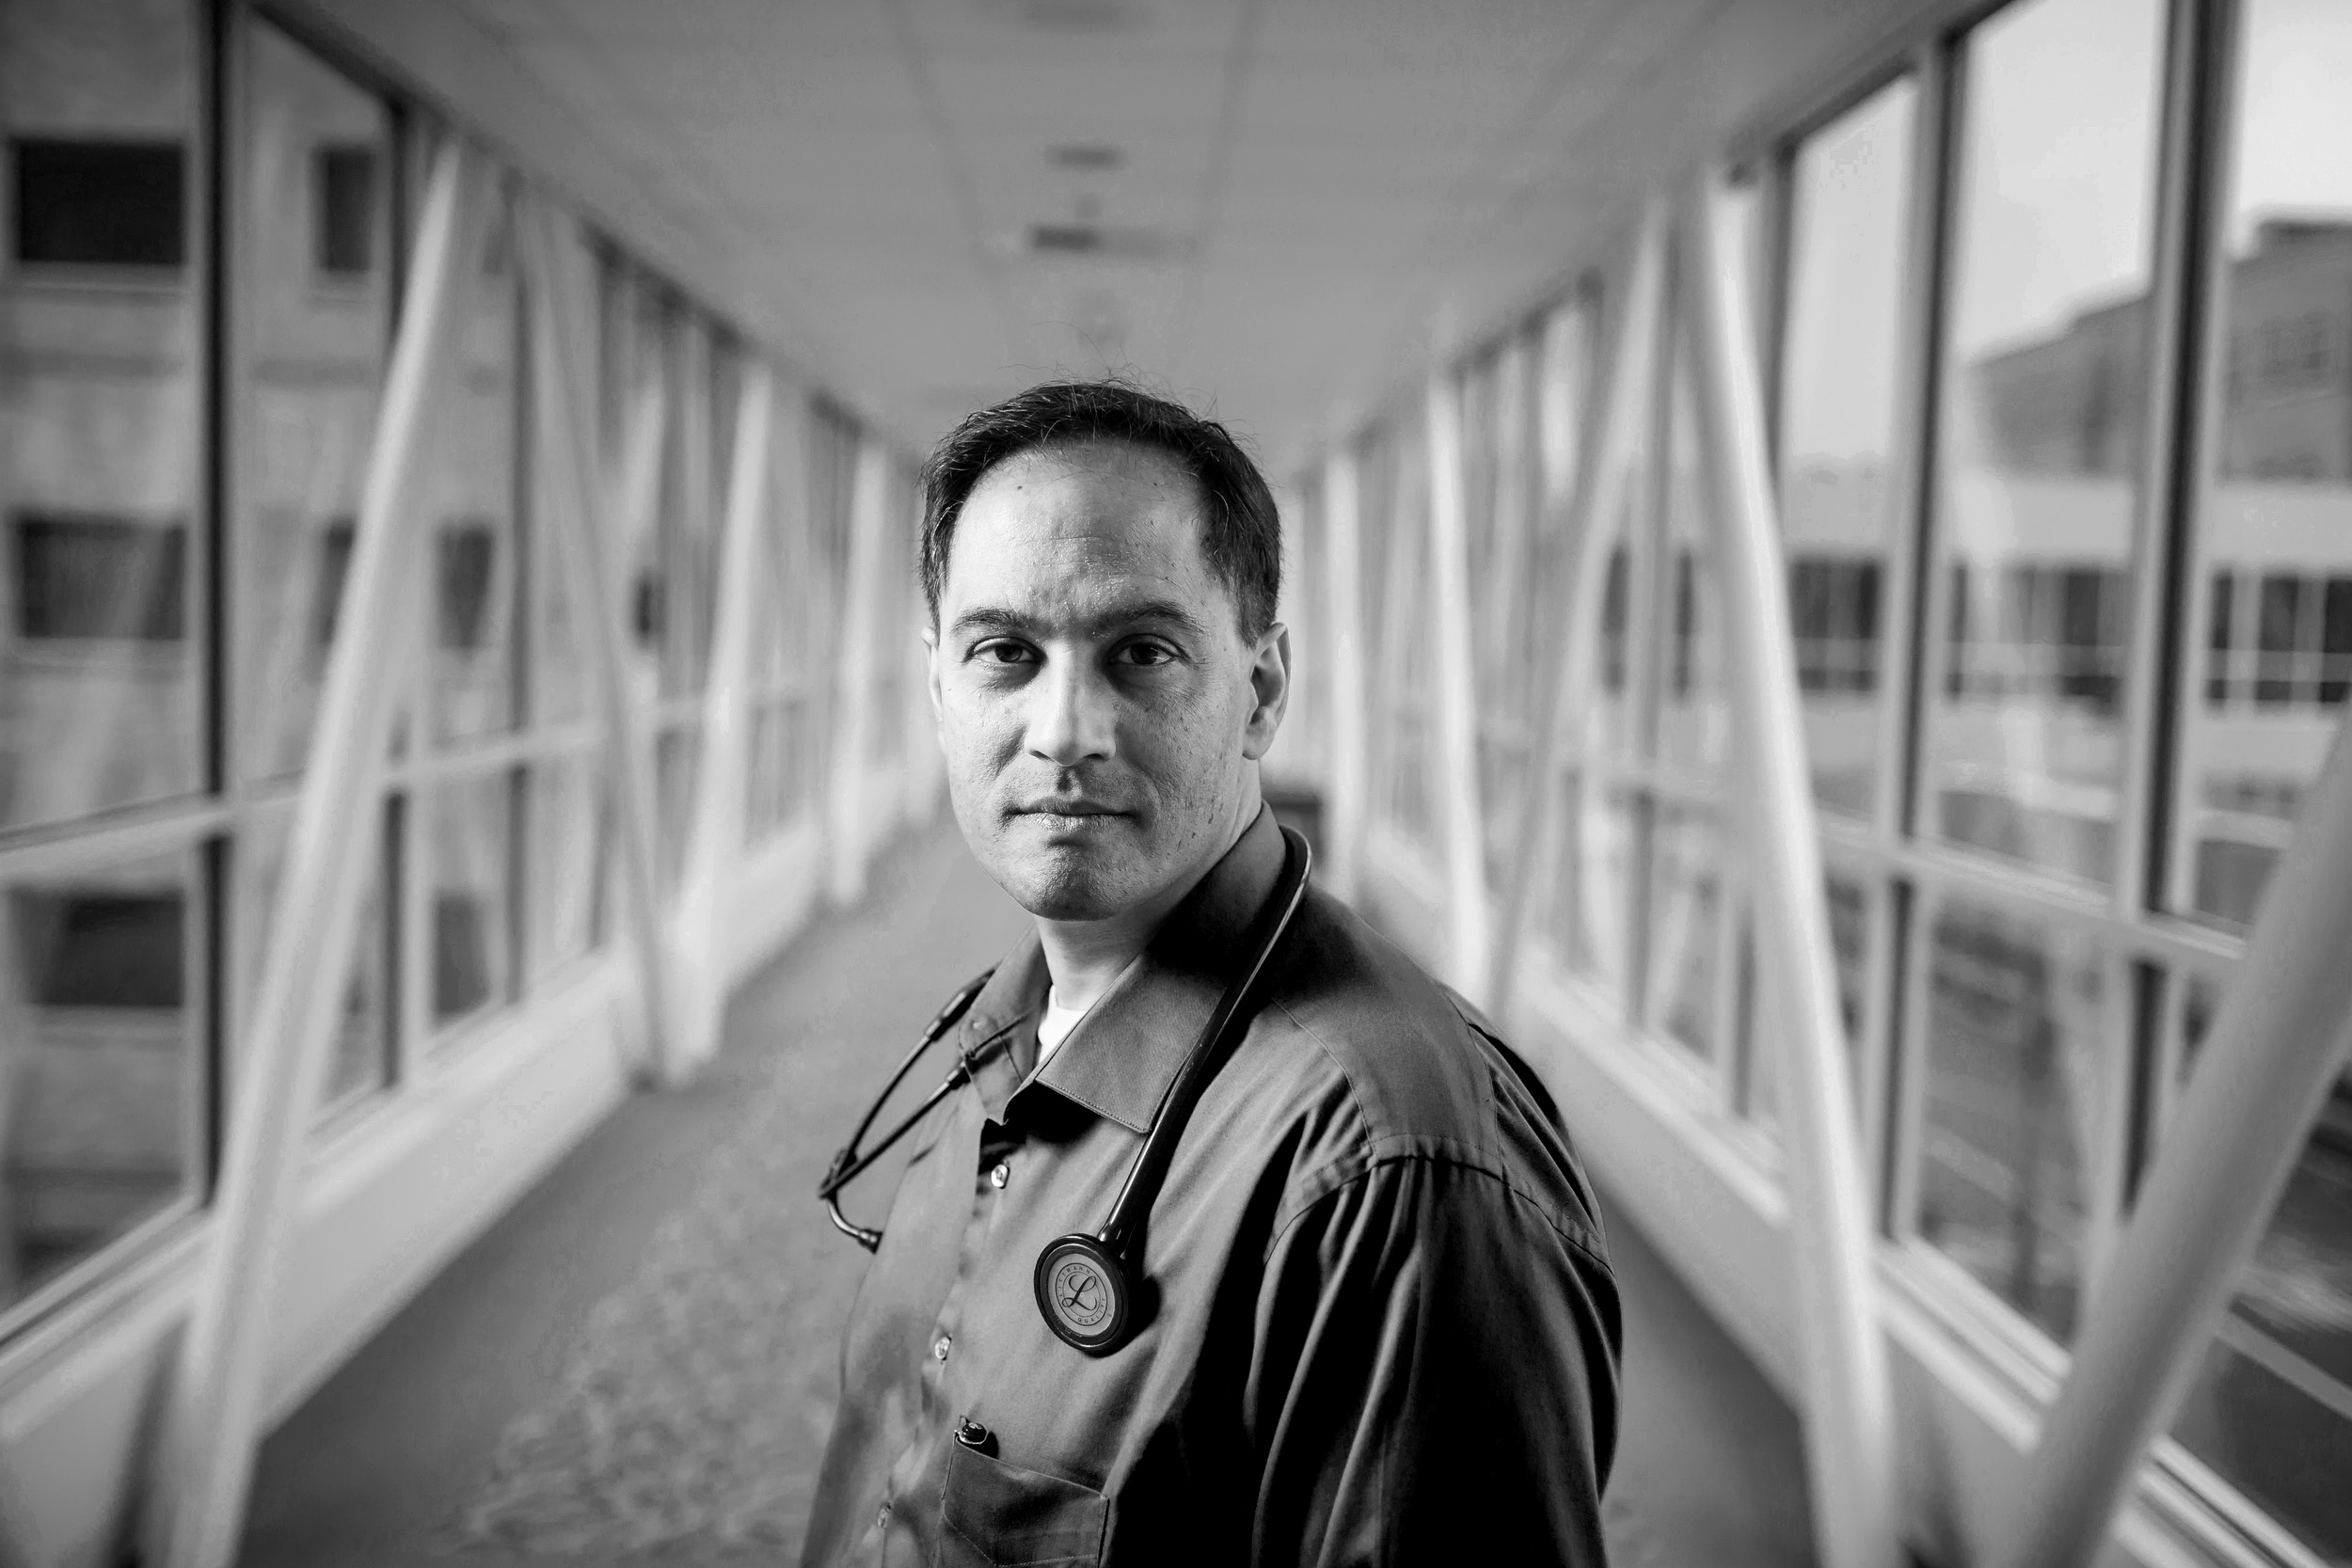 SPRINGFIELD, OR – JANUARY 6th, 2016: Dr. Rajeev Alexander, one of the first  hospitalist in Oregon, poses for a portrait at PeaceHealth Sacred Heart Medical Center at RiverBend in Springfield, OR where he has worked since 1998. Alexander is part of the union that was formed in reaction to the hospital's announcement that it wanted to outsource the facility's 36 hospitalists. As a result the administration junked their plan. CREDIT: Leah Nash for The New York Times